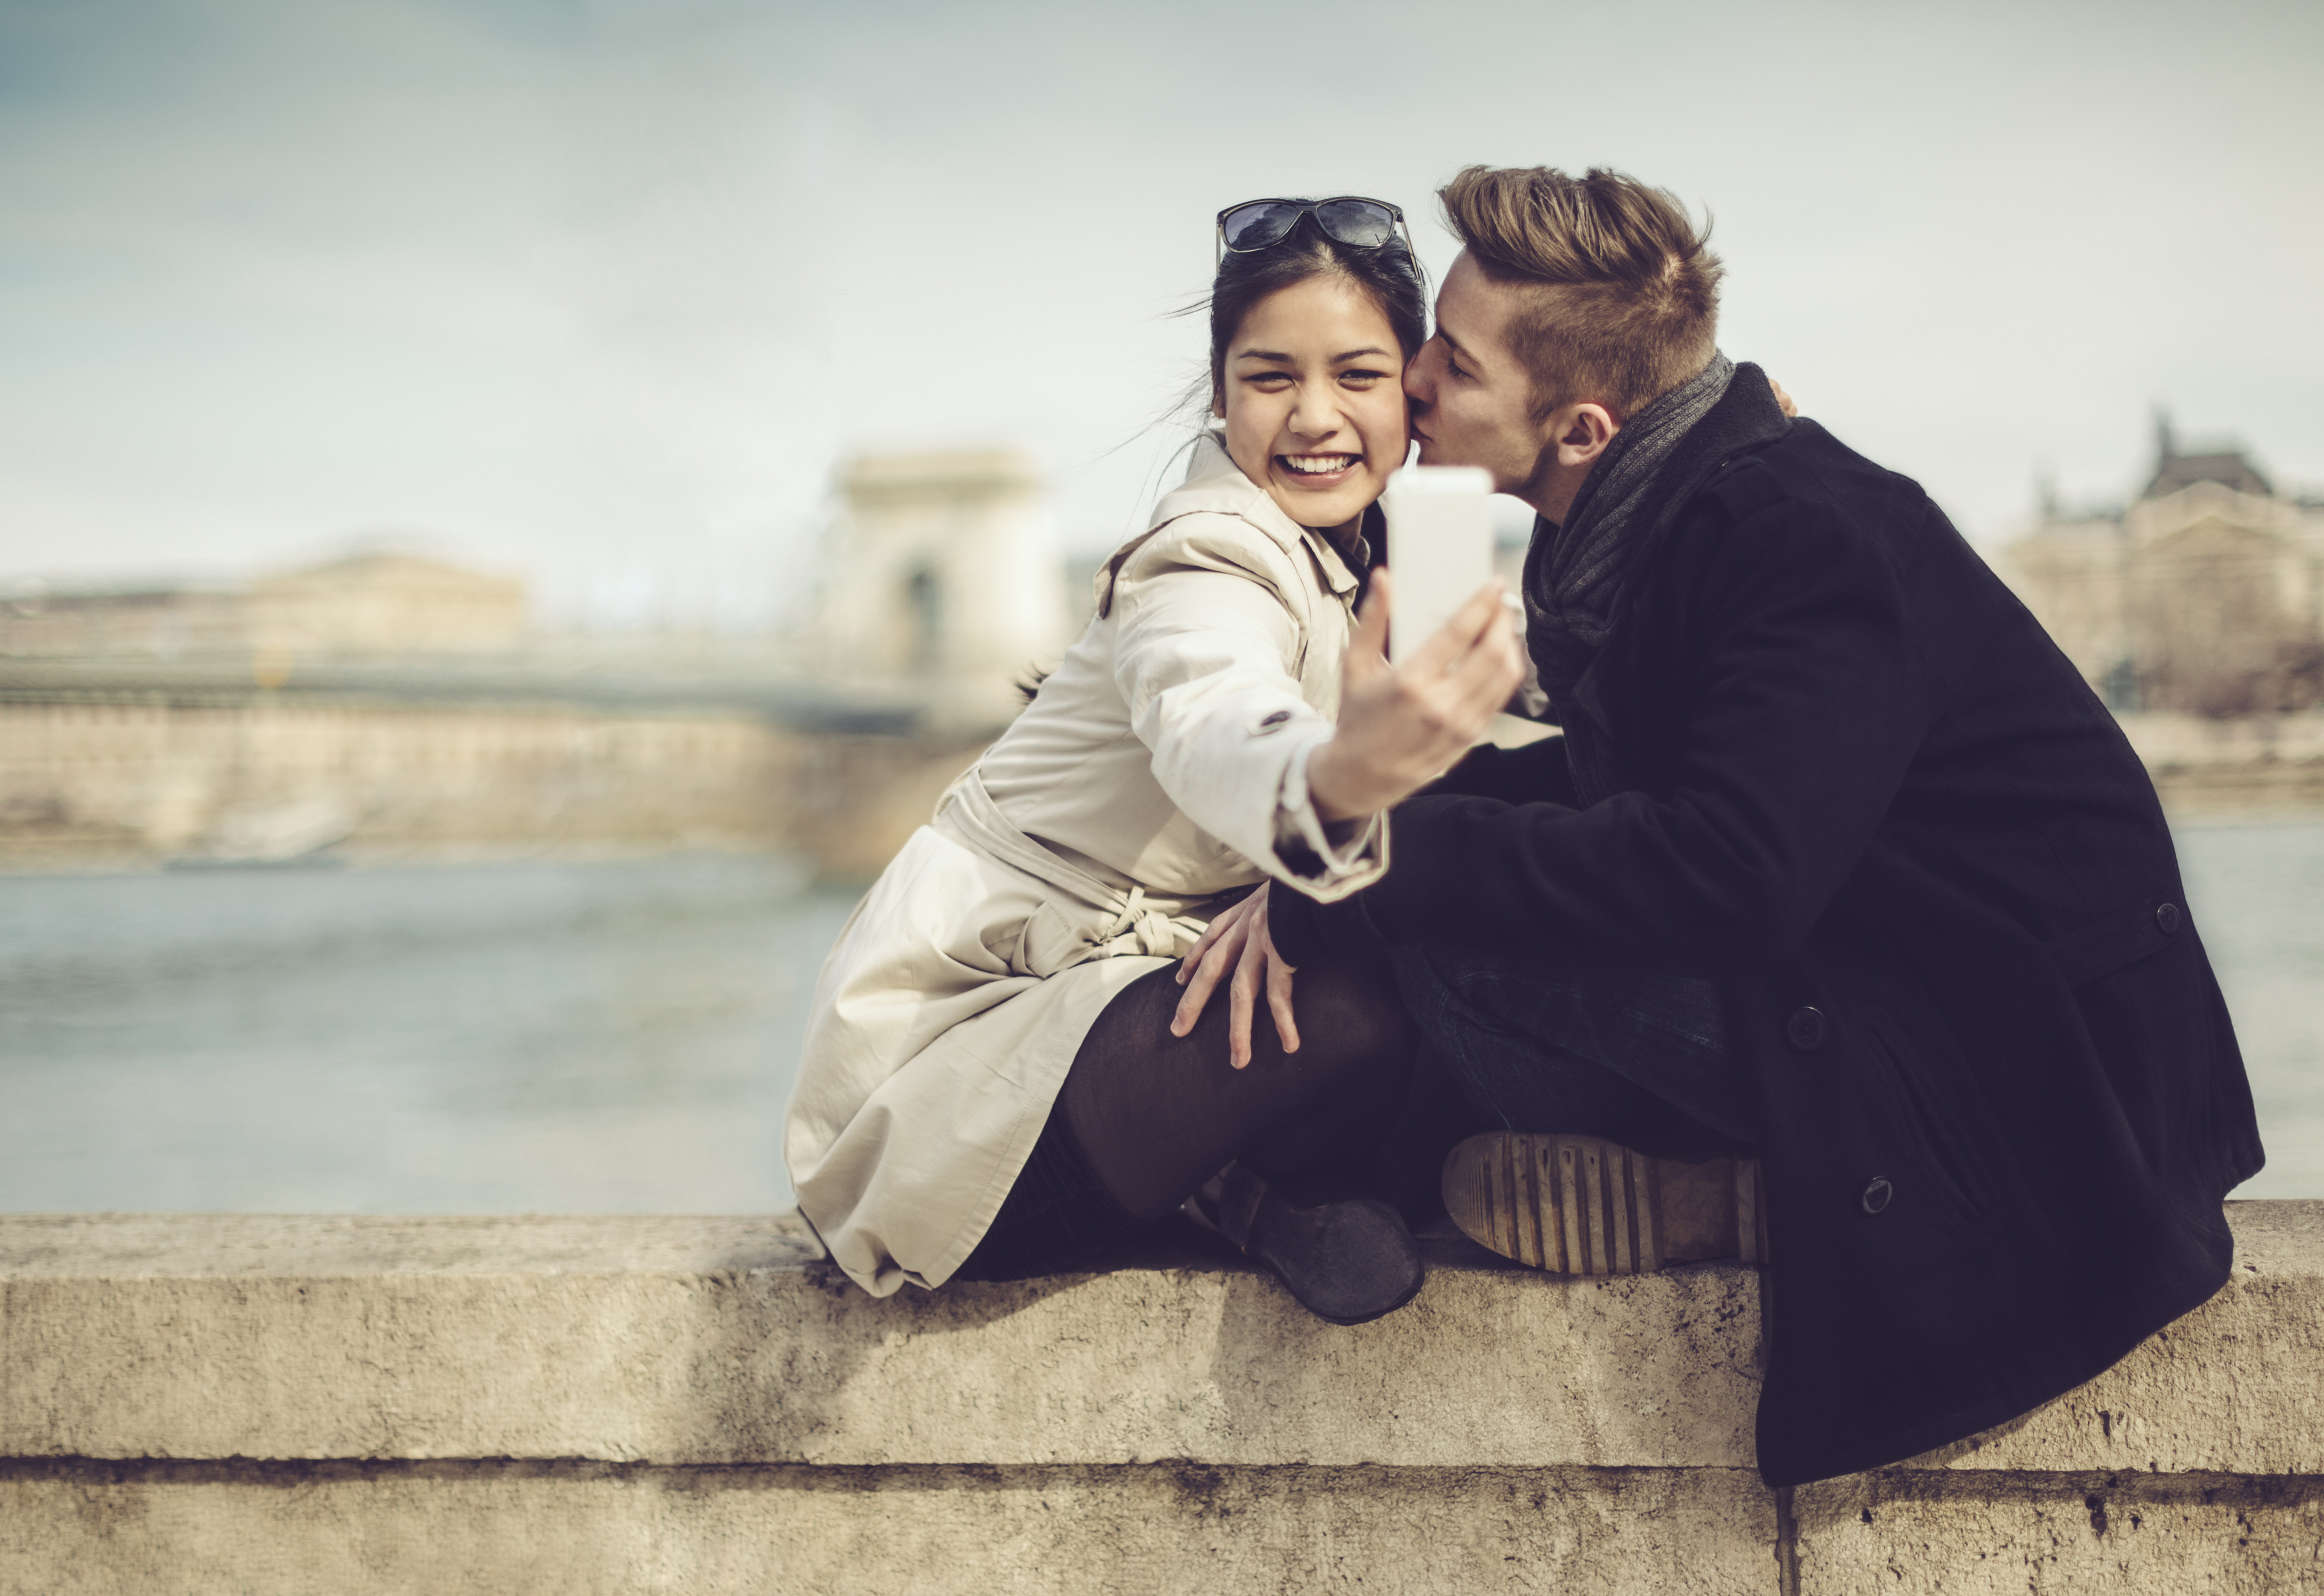 5 bad habits in relationships, which many consider normal